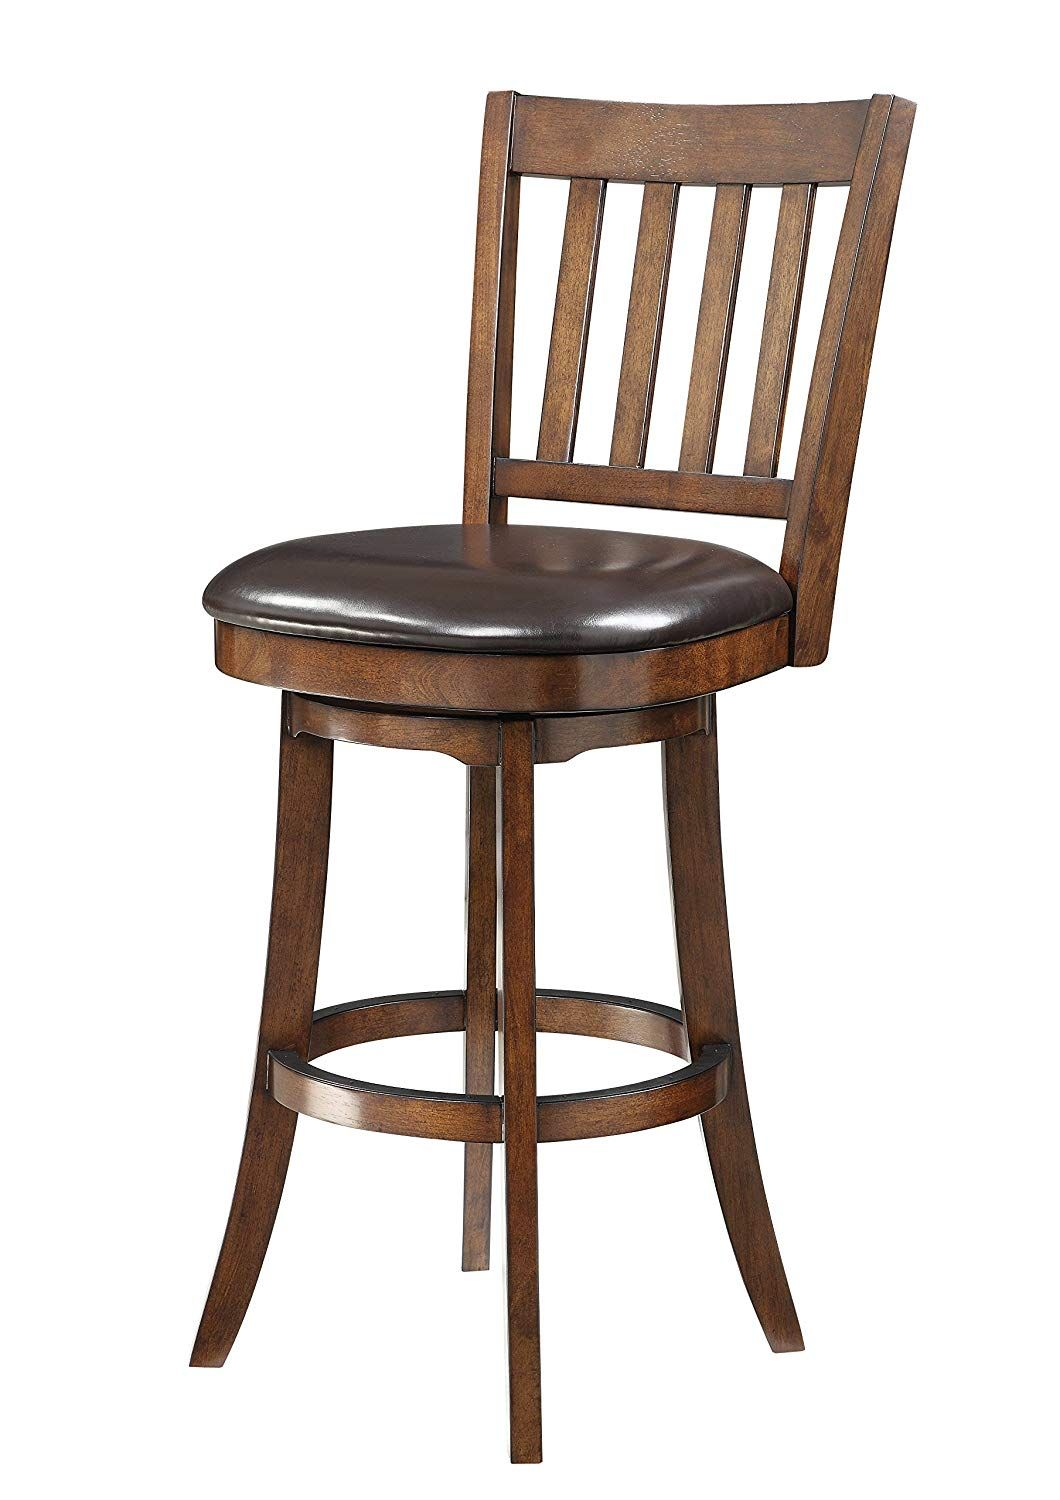 Inspired By Bassett Mission Full Back Bar Stool With Solid Wood Frame And Bonded Leather Seat 30 Inch Espresso Bar Stools Modern Vintage Furniture Stool